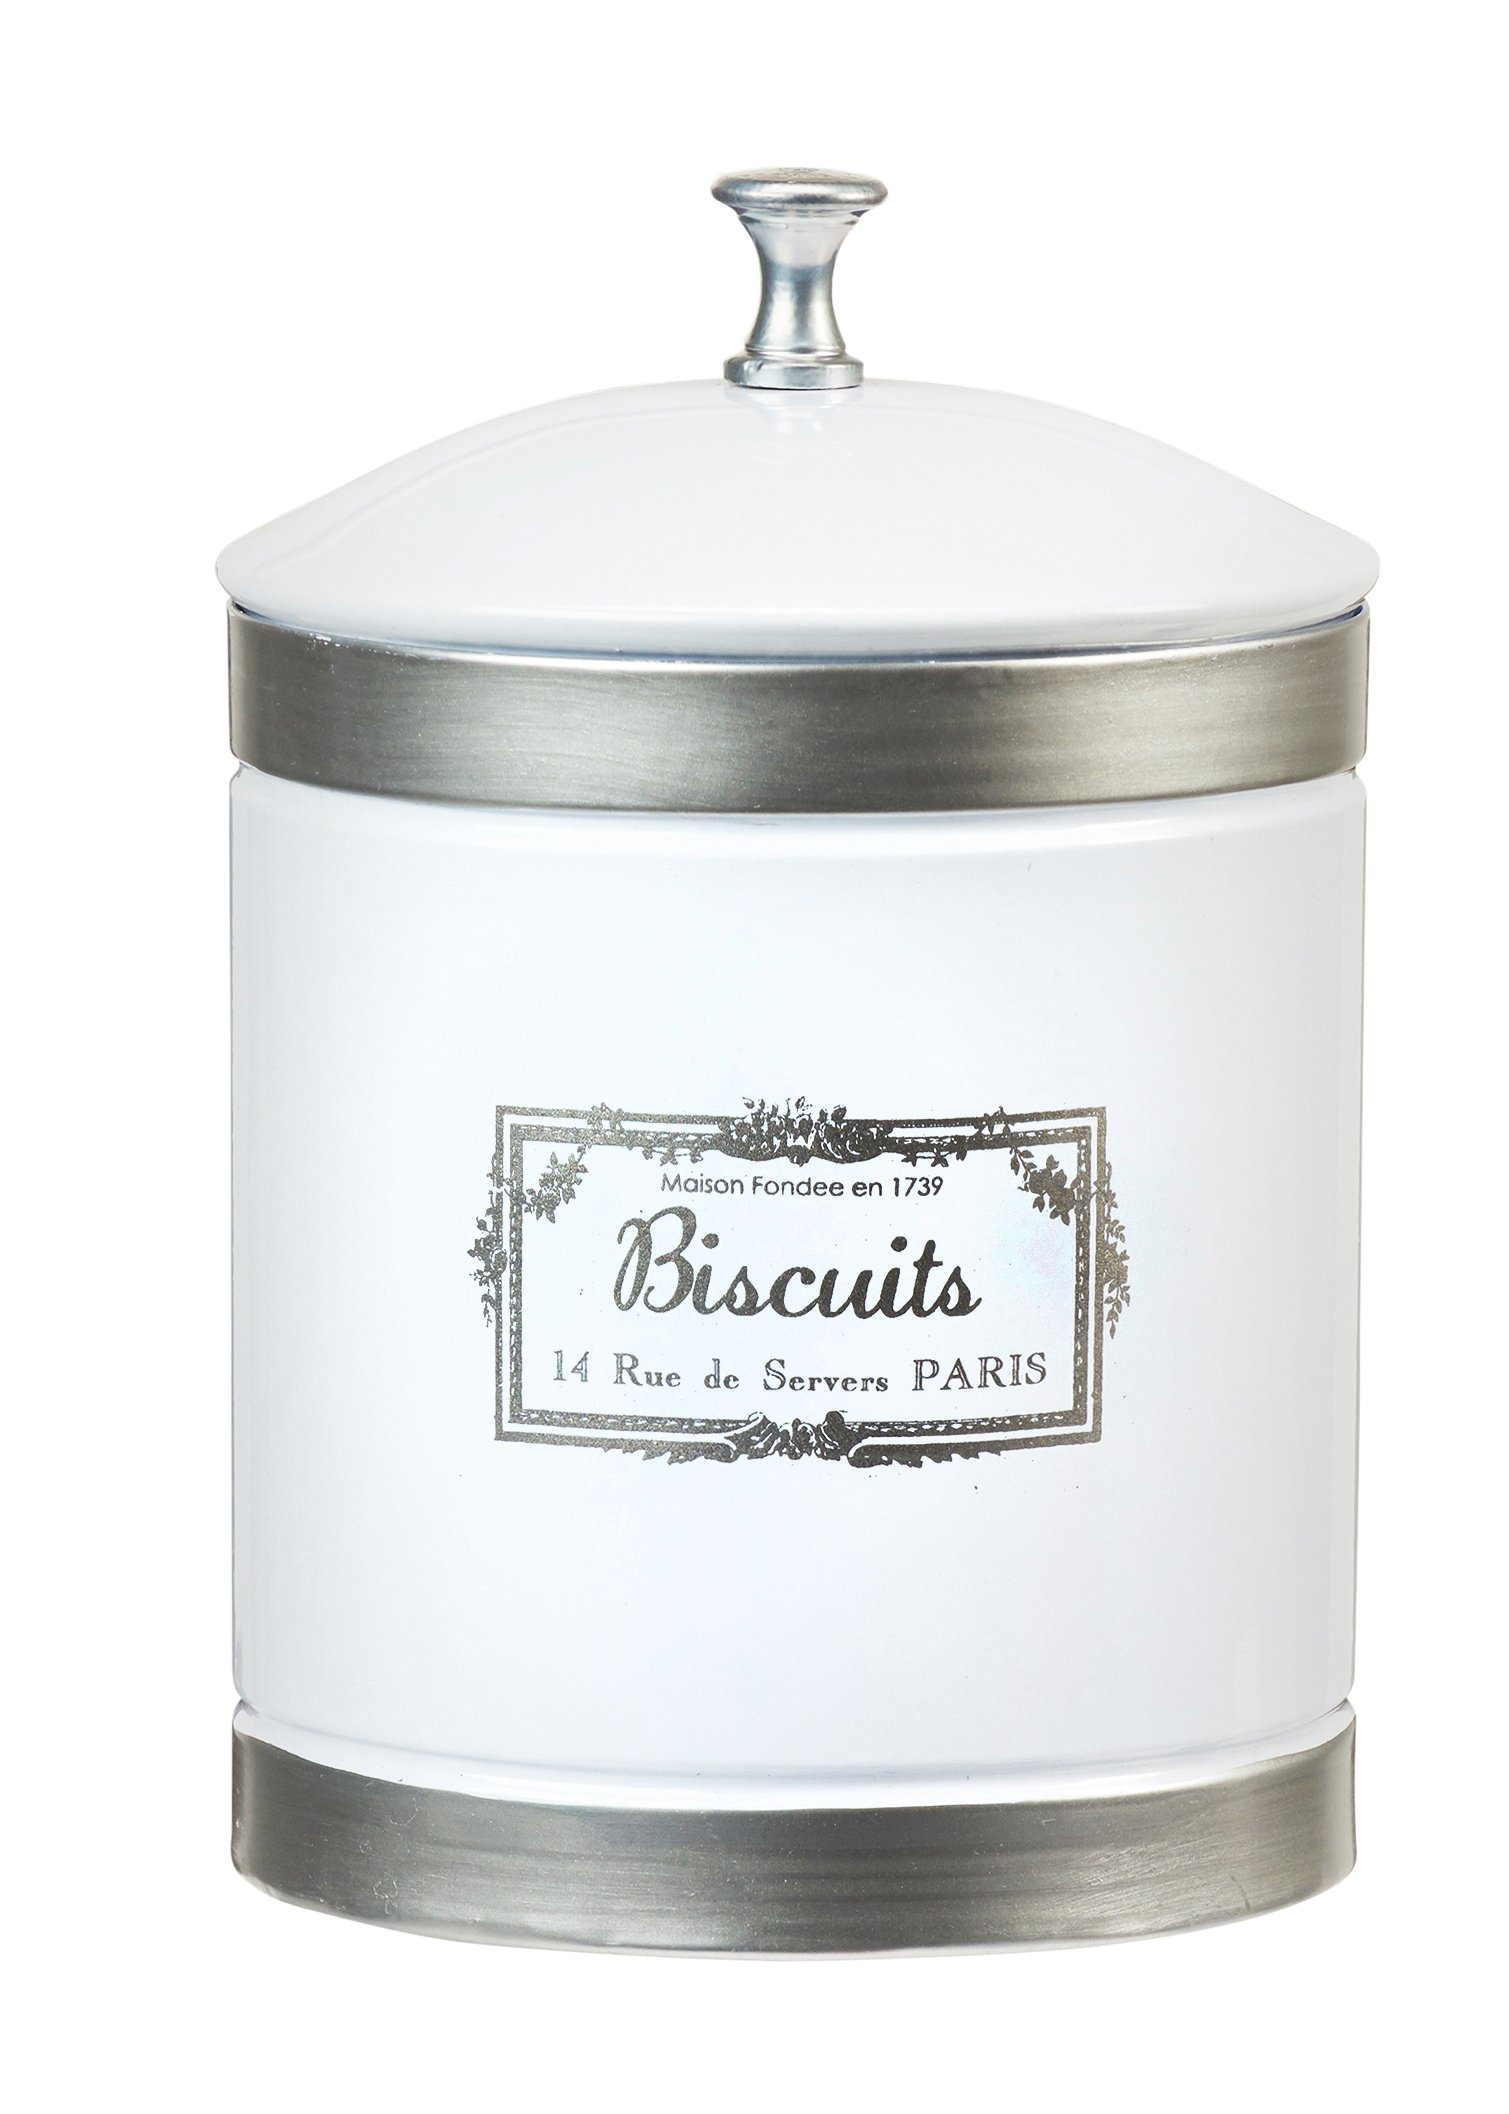 Amici Home, A5GS038R, Country Farmhouse Collection Biscuits Metal Storage Canister, Lid, Food Safe, 78 Ounces, Large